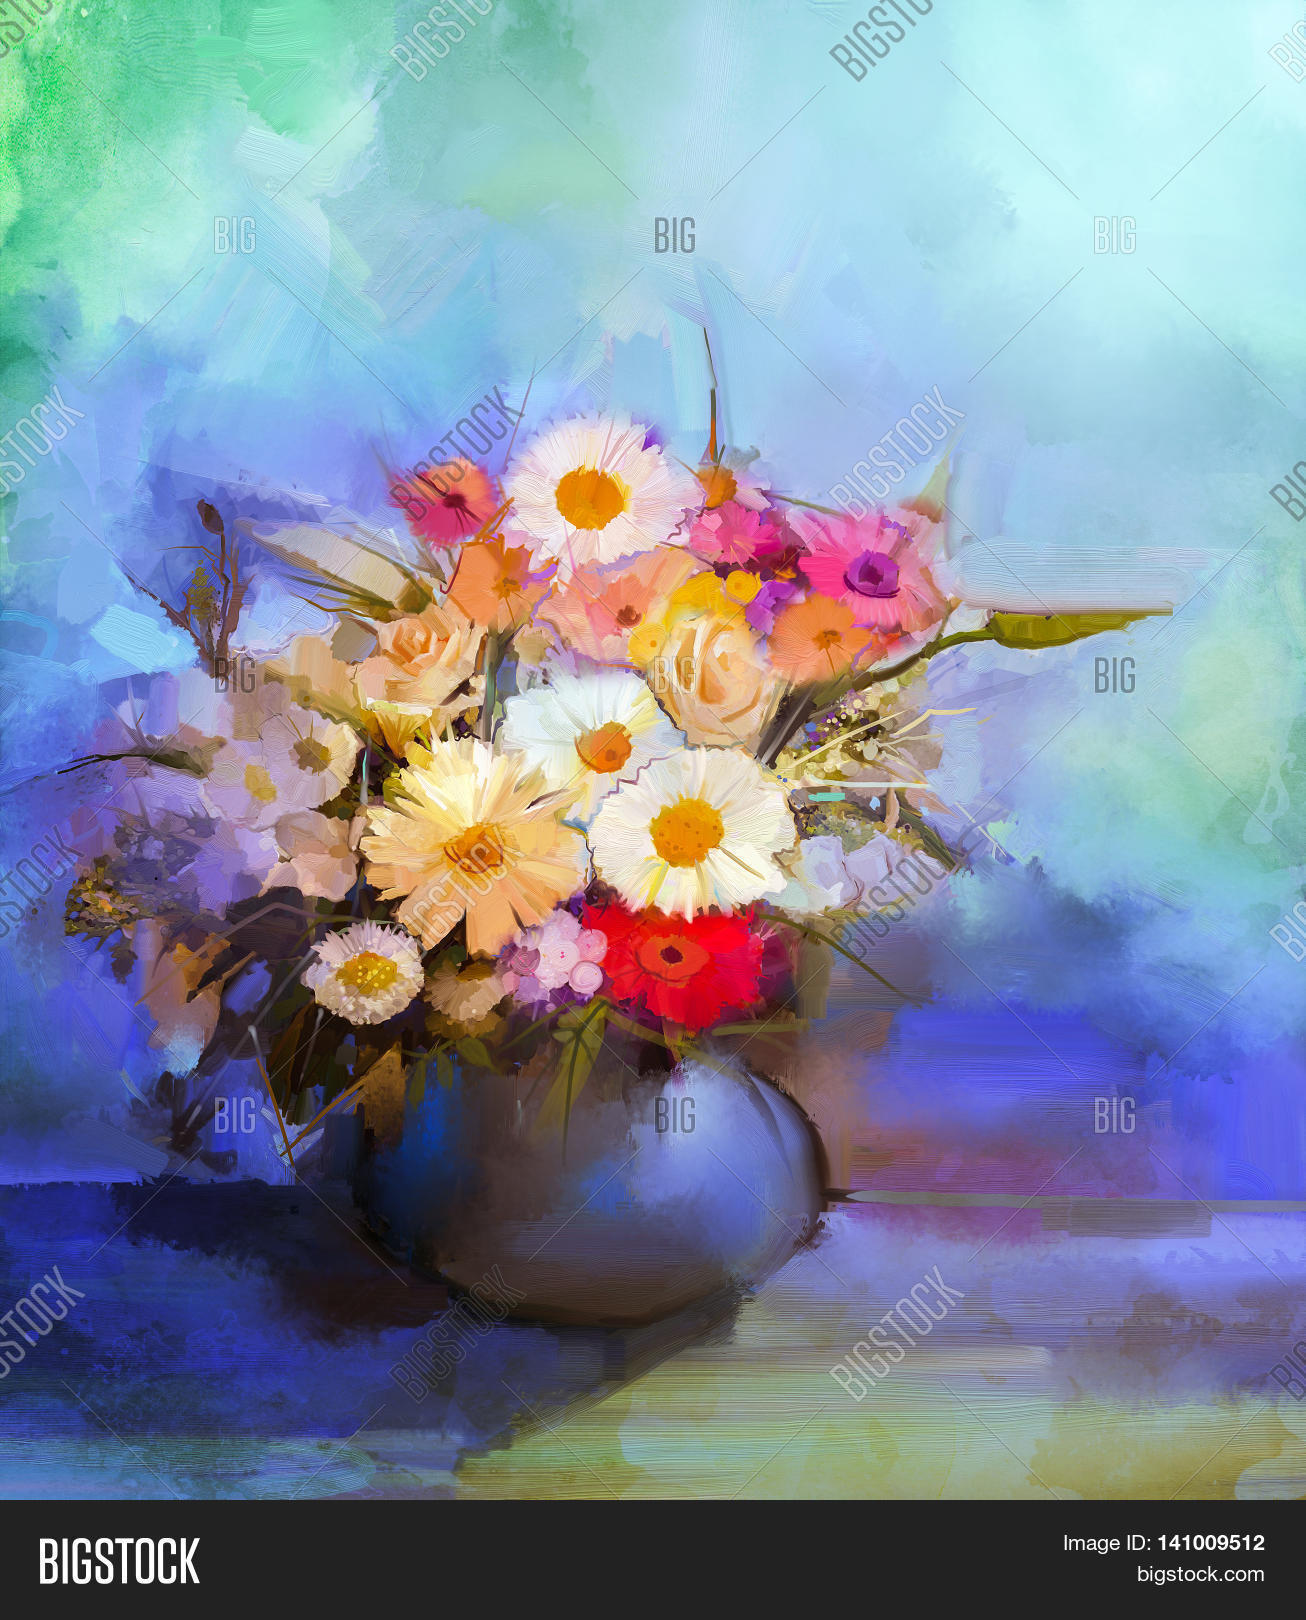 Oil painting flowers image photo free trial bigstock oil painting flowers in vase hand paint still life bouquet of white yellow and izmirmasajfo